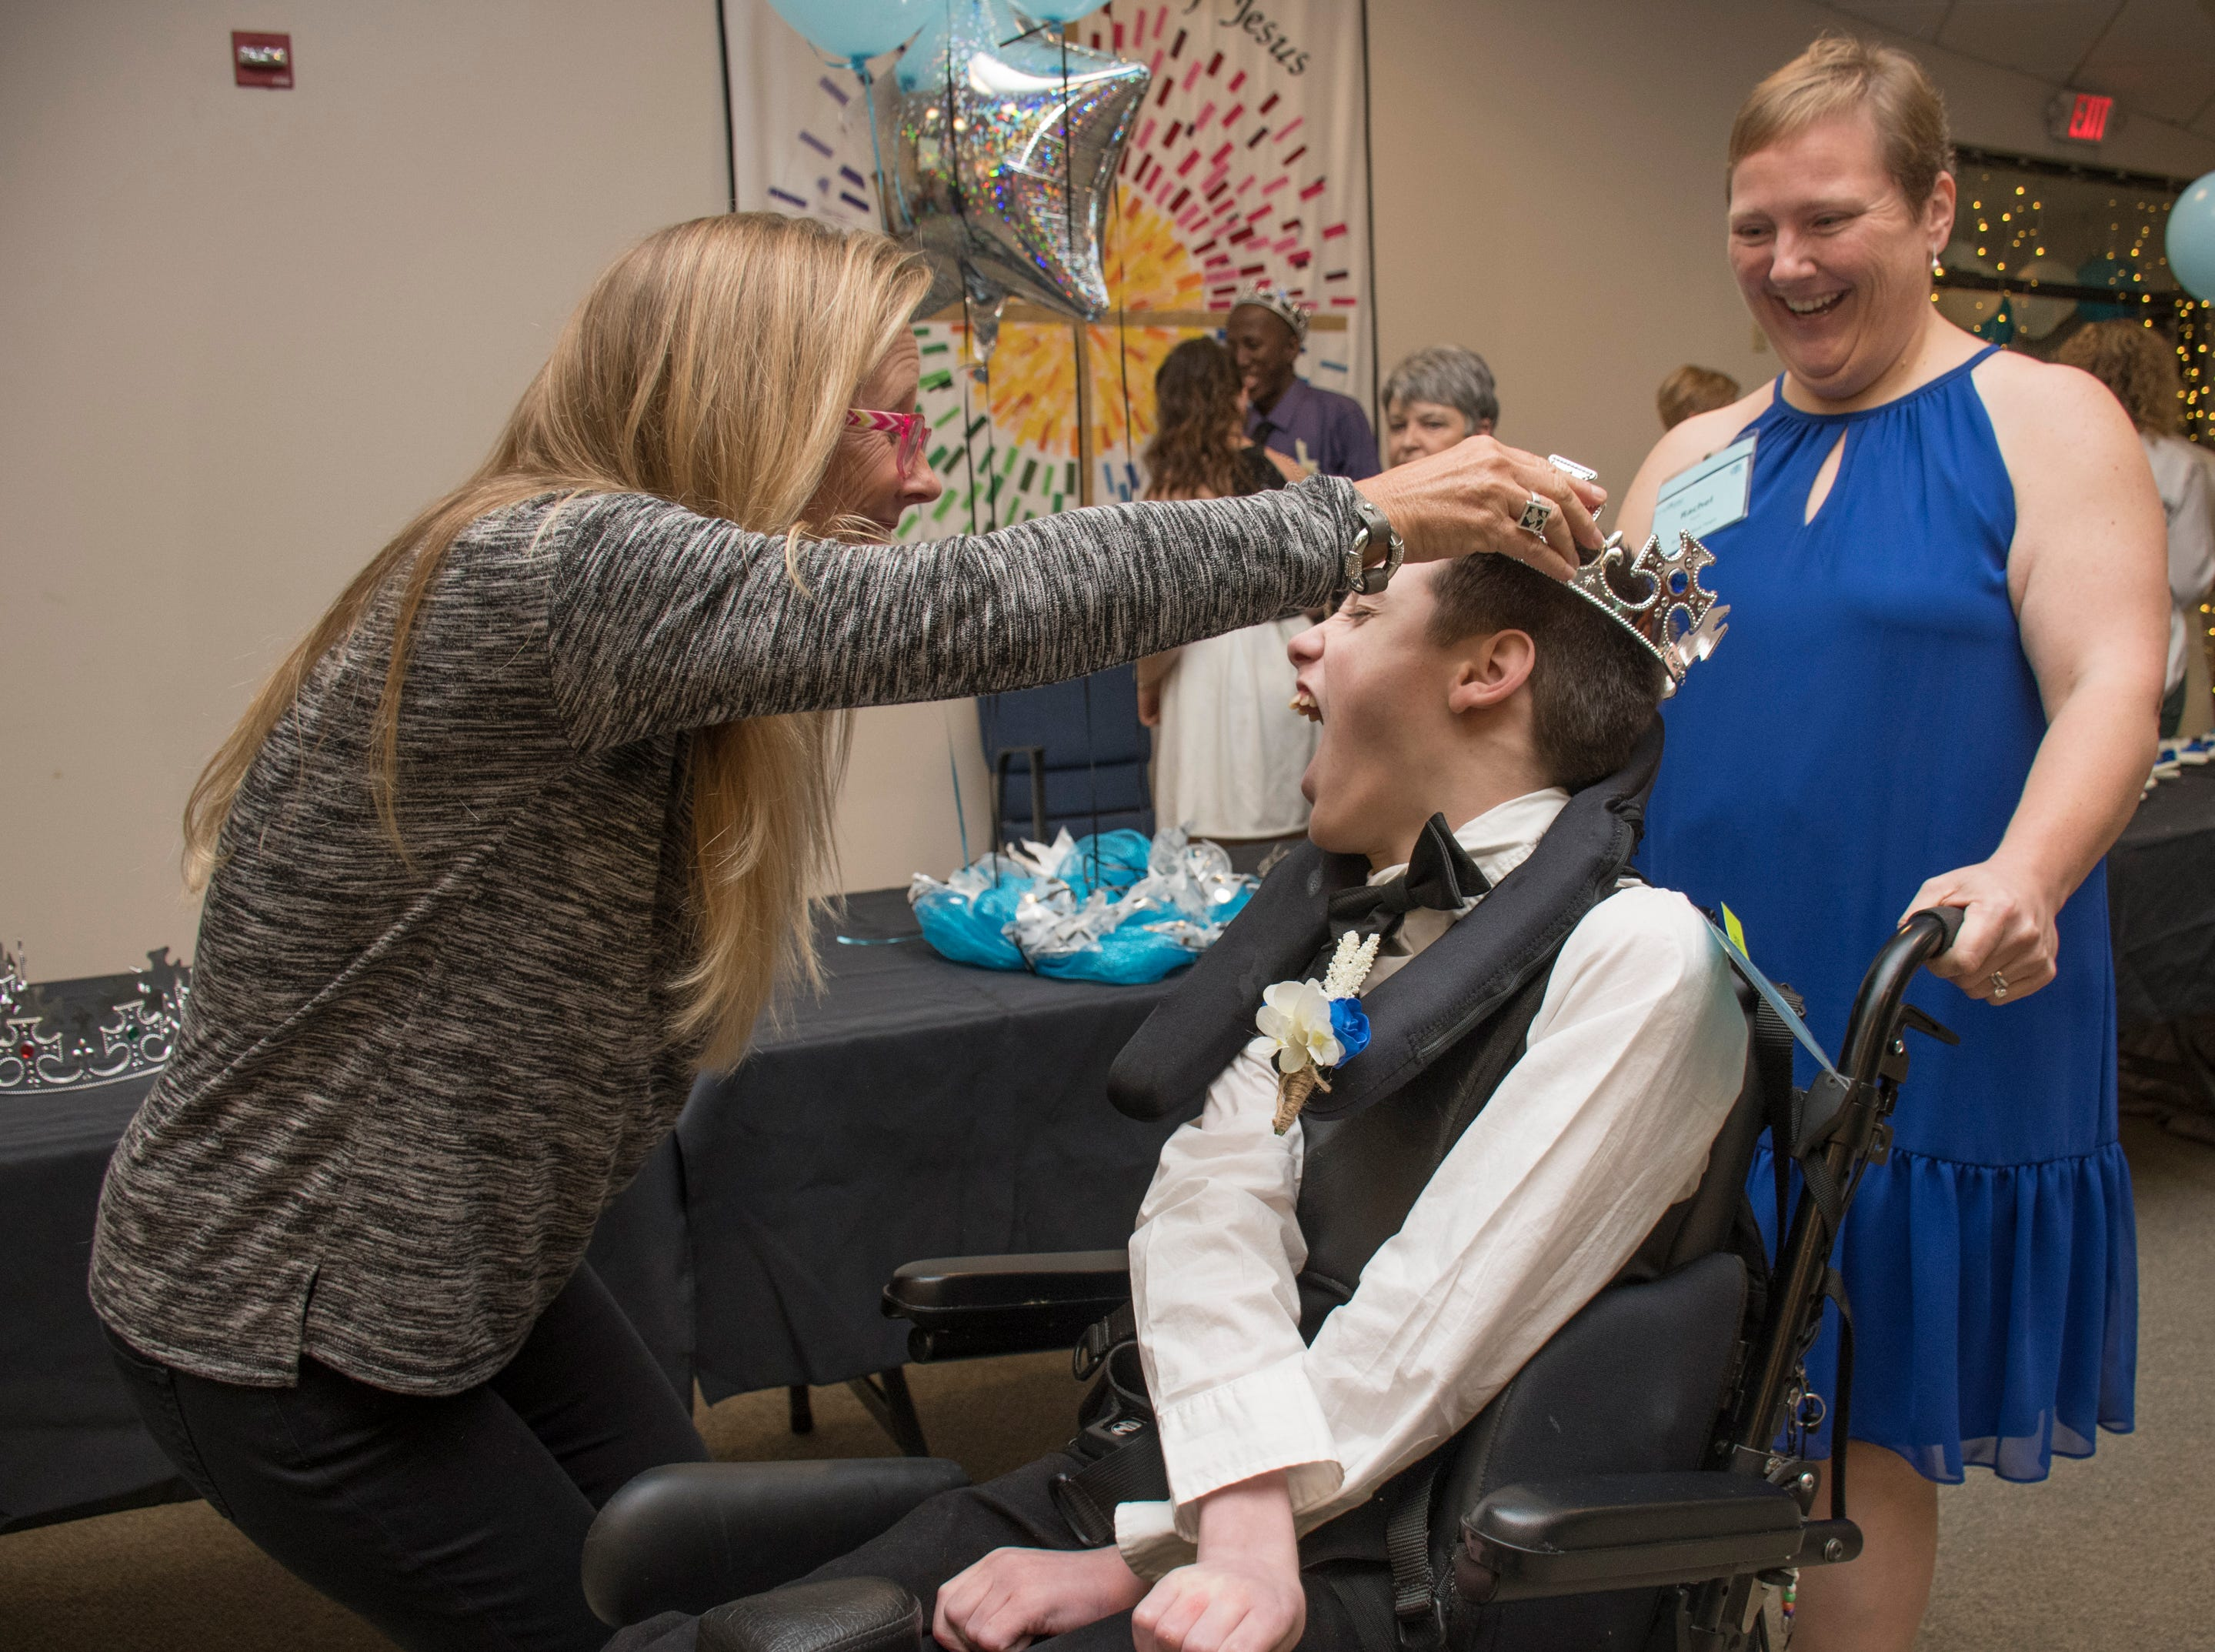 Samuel Wilkie is all smiles as Marcy Costa places a crown on his head at the beginning of the Night to Shine prom for people with special needs sponsored by the Tim Tebow Foundation at Perdido Bay United Methodist Church in Pensacola on Friday, February 8, 2019.